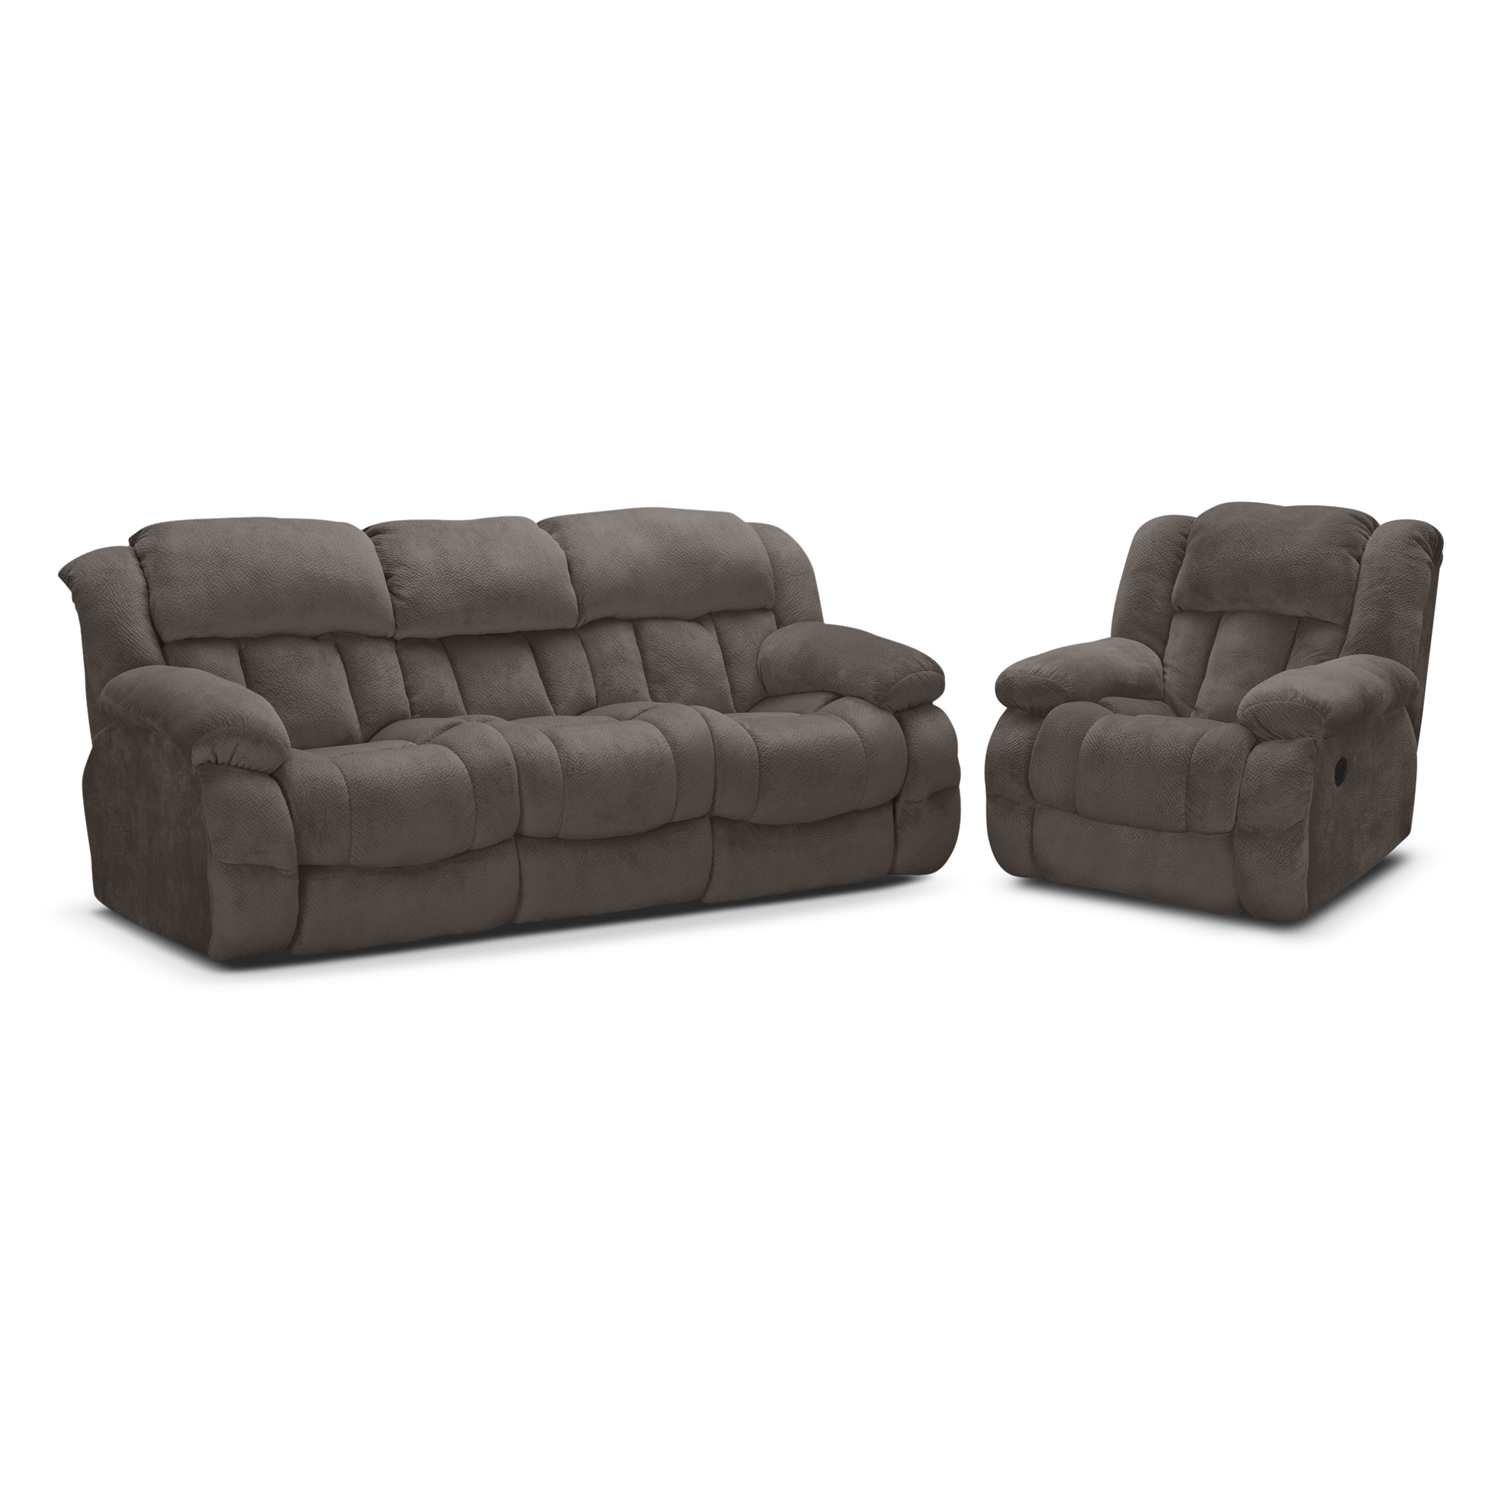 park city dual reclining sofa and glider recliner set gray